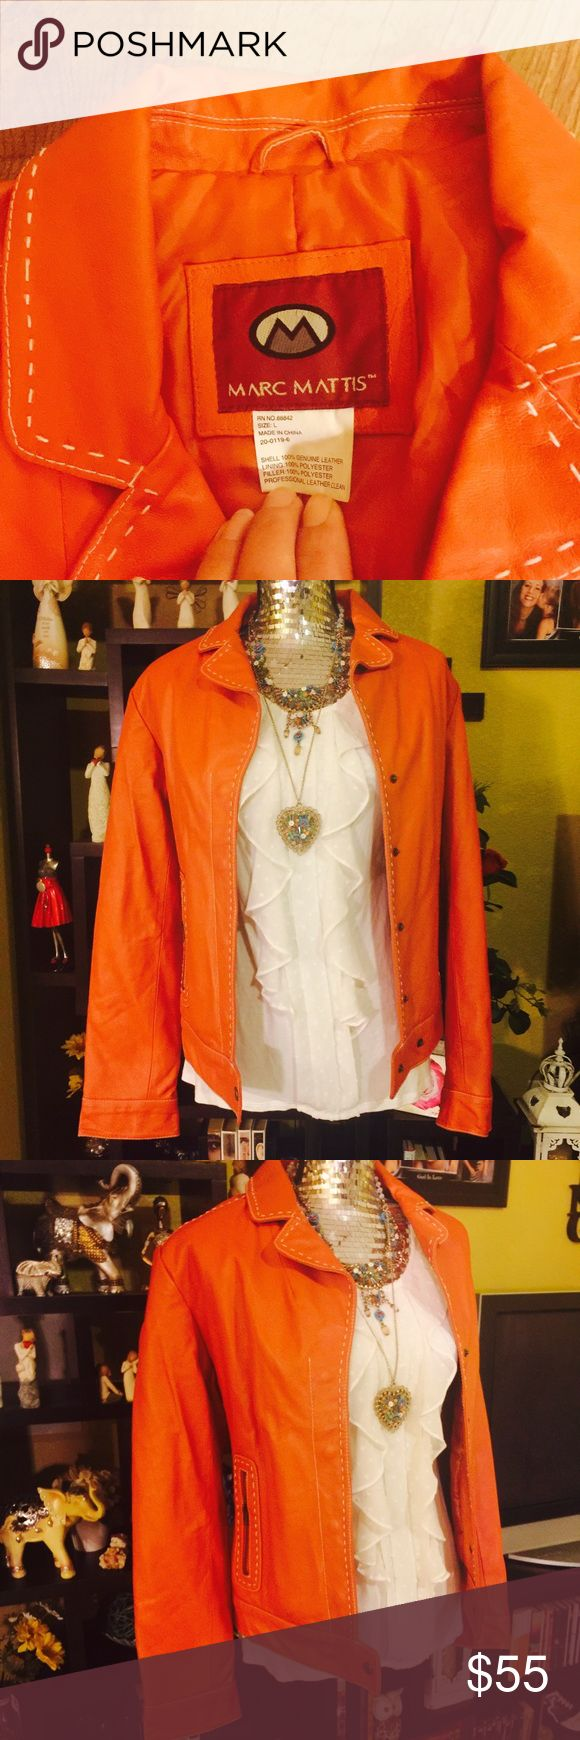 Marc MATTIS Genuine Leather Jacket Amazing quality Genuine leather jacket. Super trendy with white stitching all over. Perfect for layering, or putting over spaghetti straps for the office. Deep coral, or a burnt orange color, it's very pretty a RICH looking color. This jacket will last forever, it is made to be on trend but with impeccable quality. Definitely worth every dime. Retail $89,99 open to reasonable offers. Shirt is also for sale and can be included in this listing. Marc MATTIS…